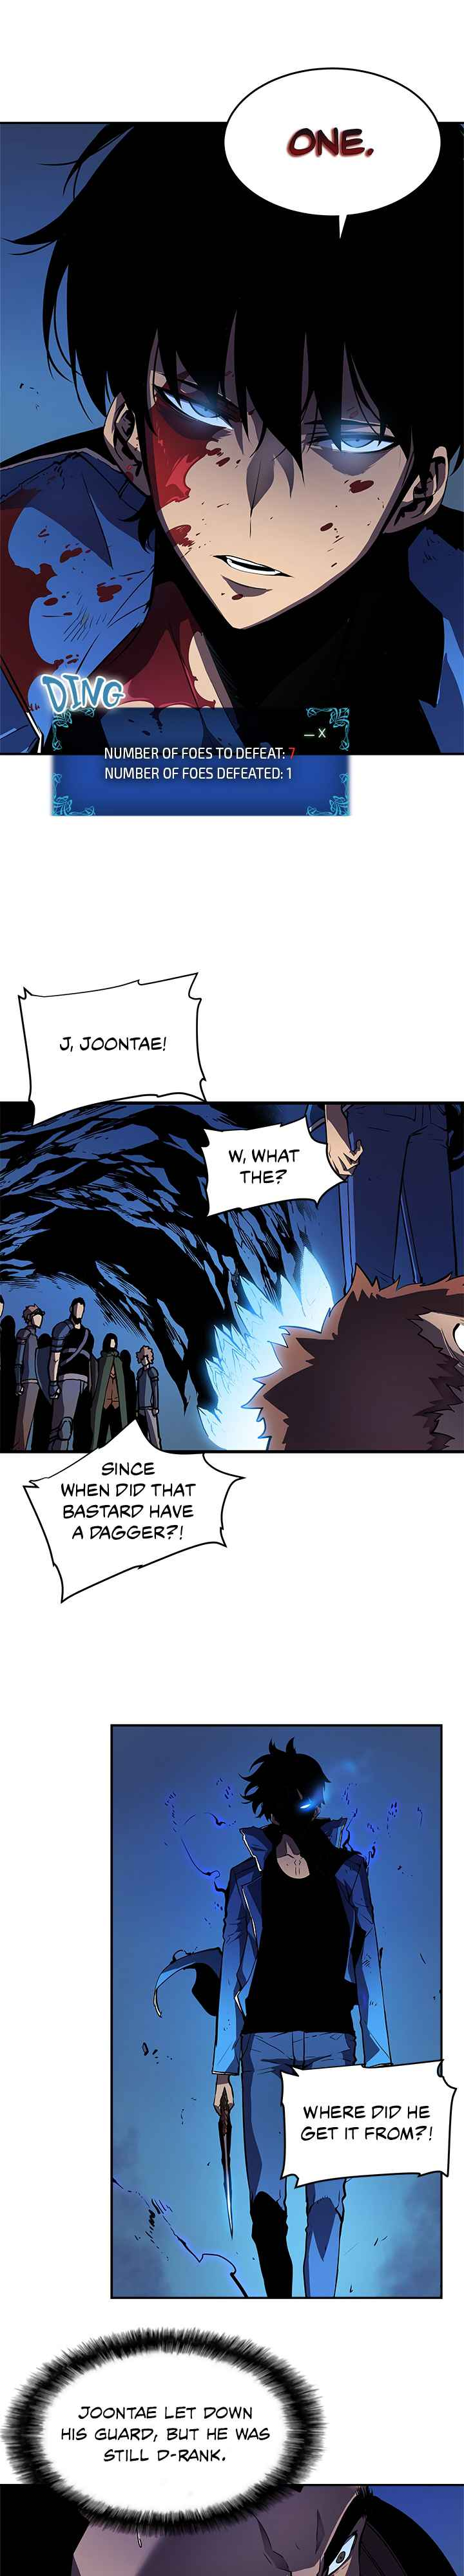 Solo Leveling Chapter 24 Page 1